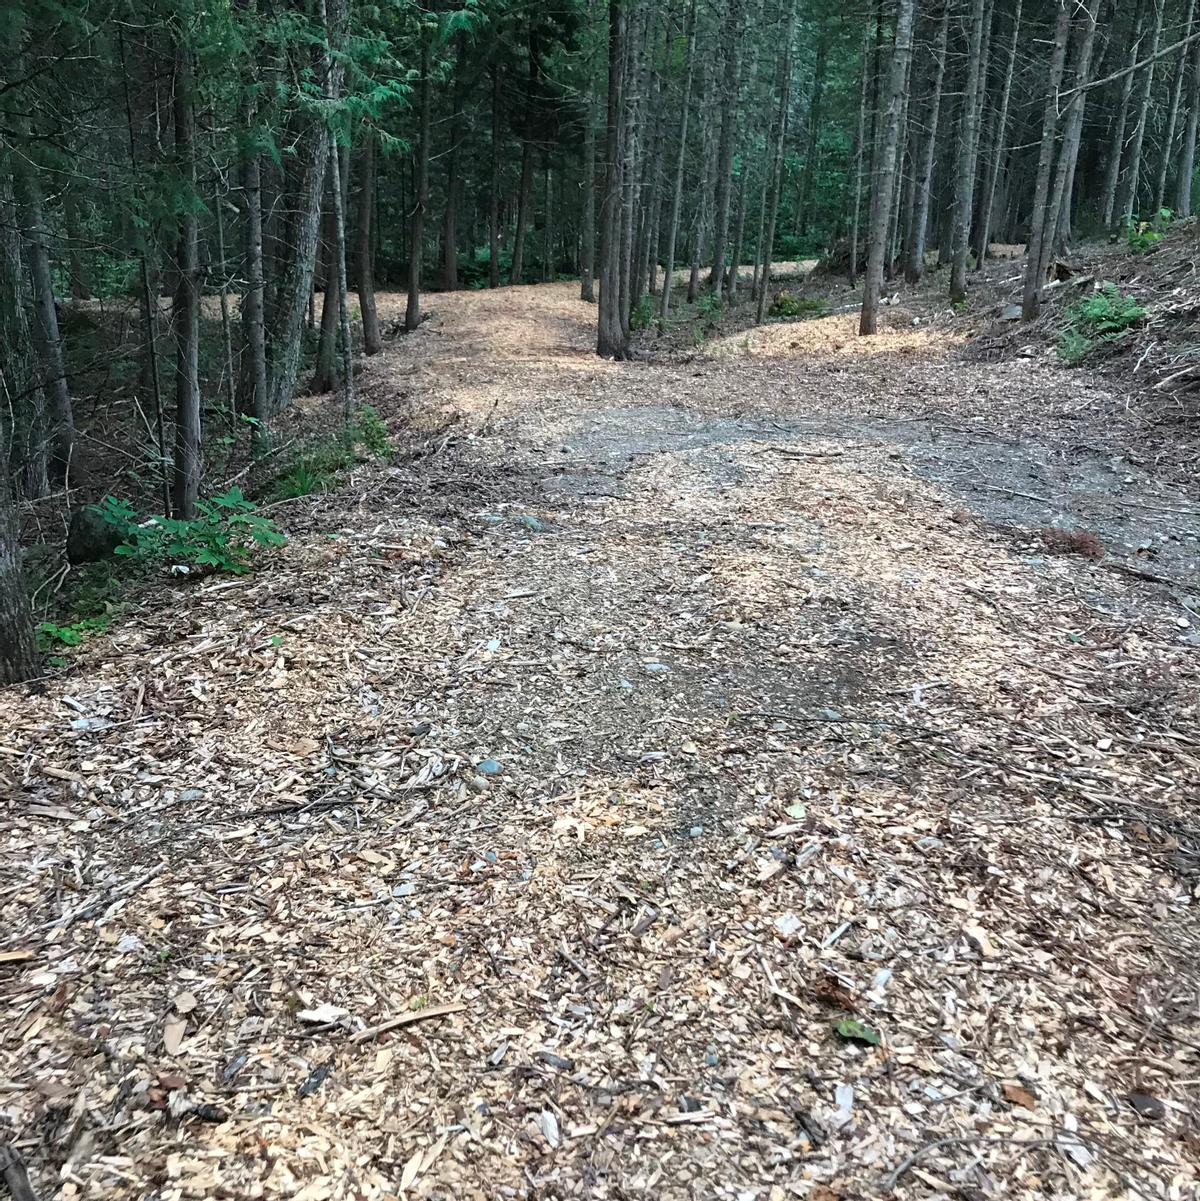 A mix of woodchips and stones make up the surface of the trail